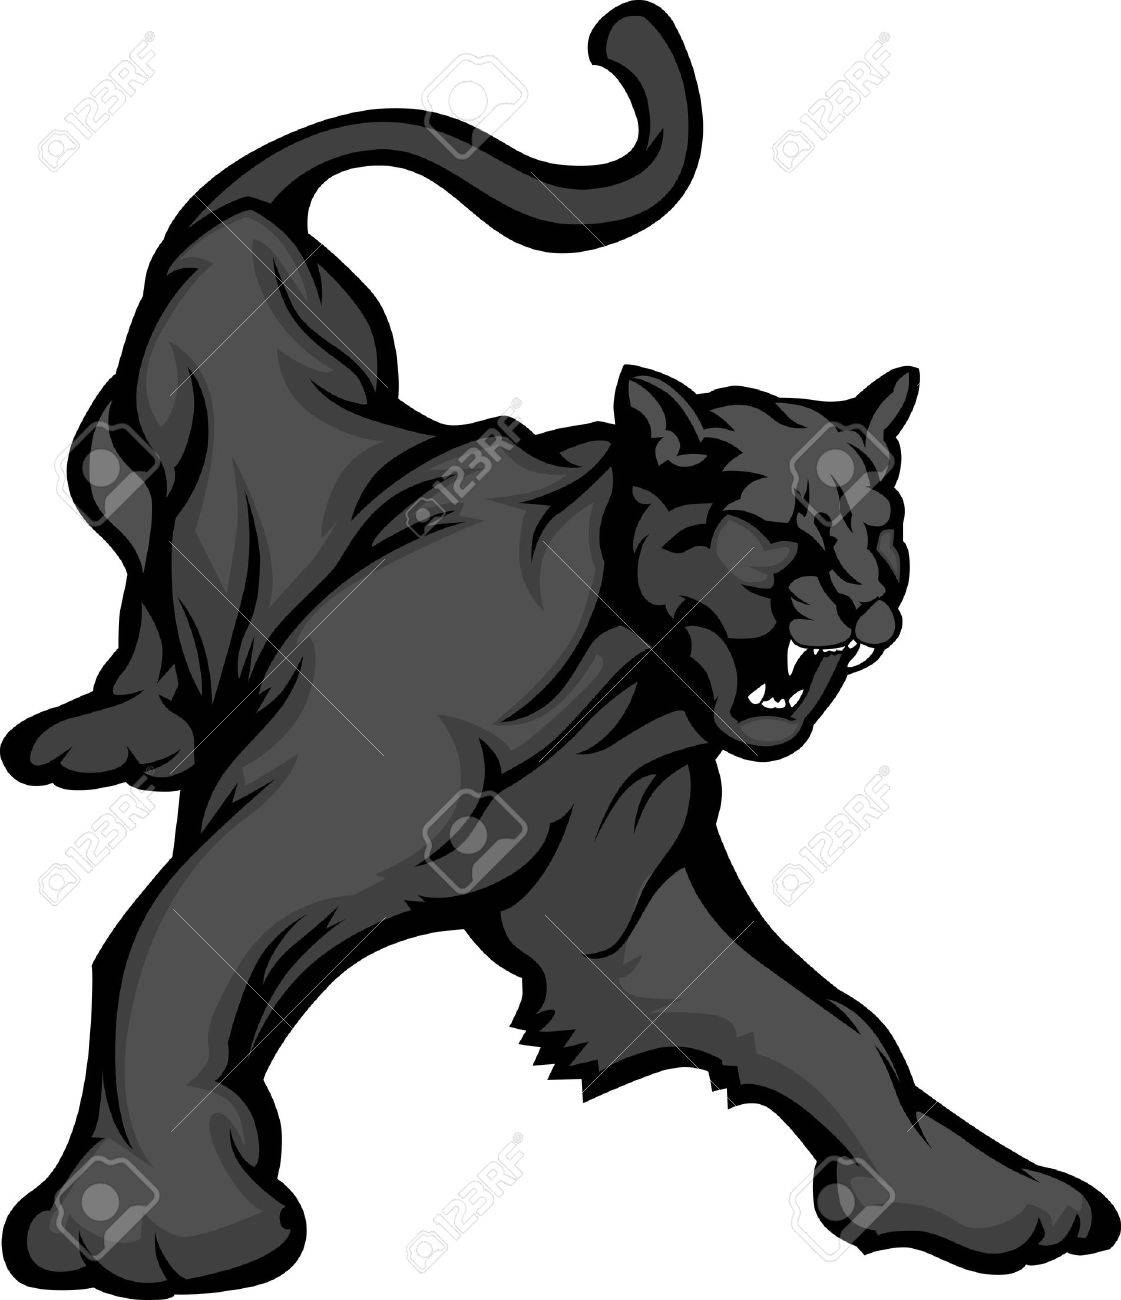 graphic mascot vector image of a black panther growling royalty free rh 123rf com Cute Panther Clip Art Panther Silhouette Clip Art